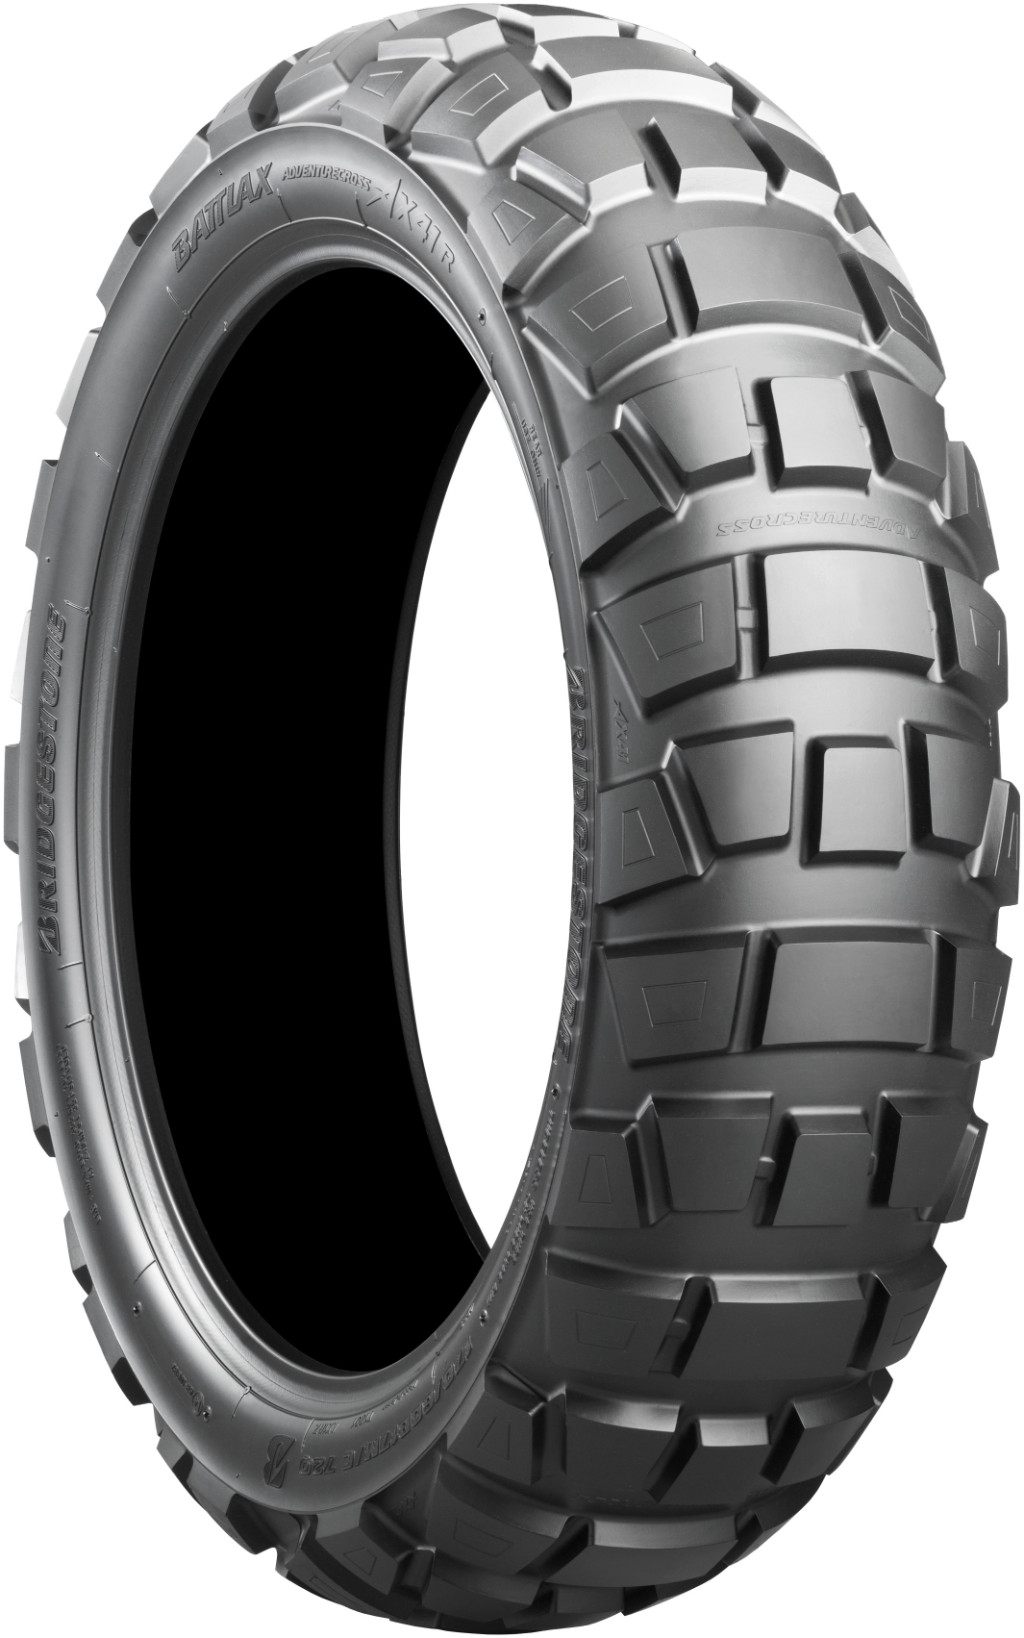 BRIDGESTONE BATTLAX ADVENTURECROSS AX41 [150/70B 18M/C 70Q] Tire